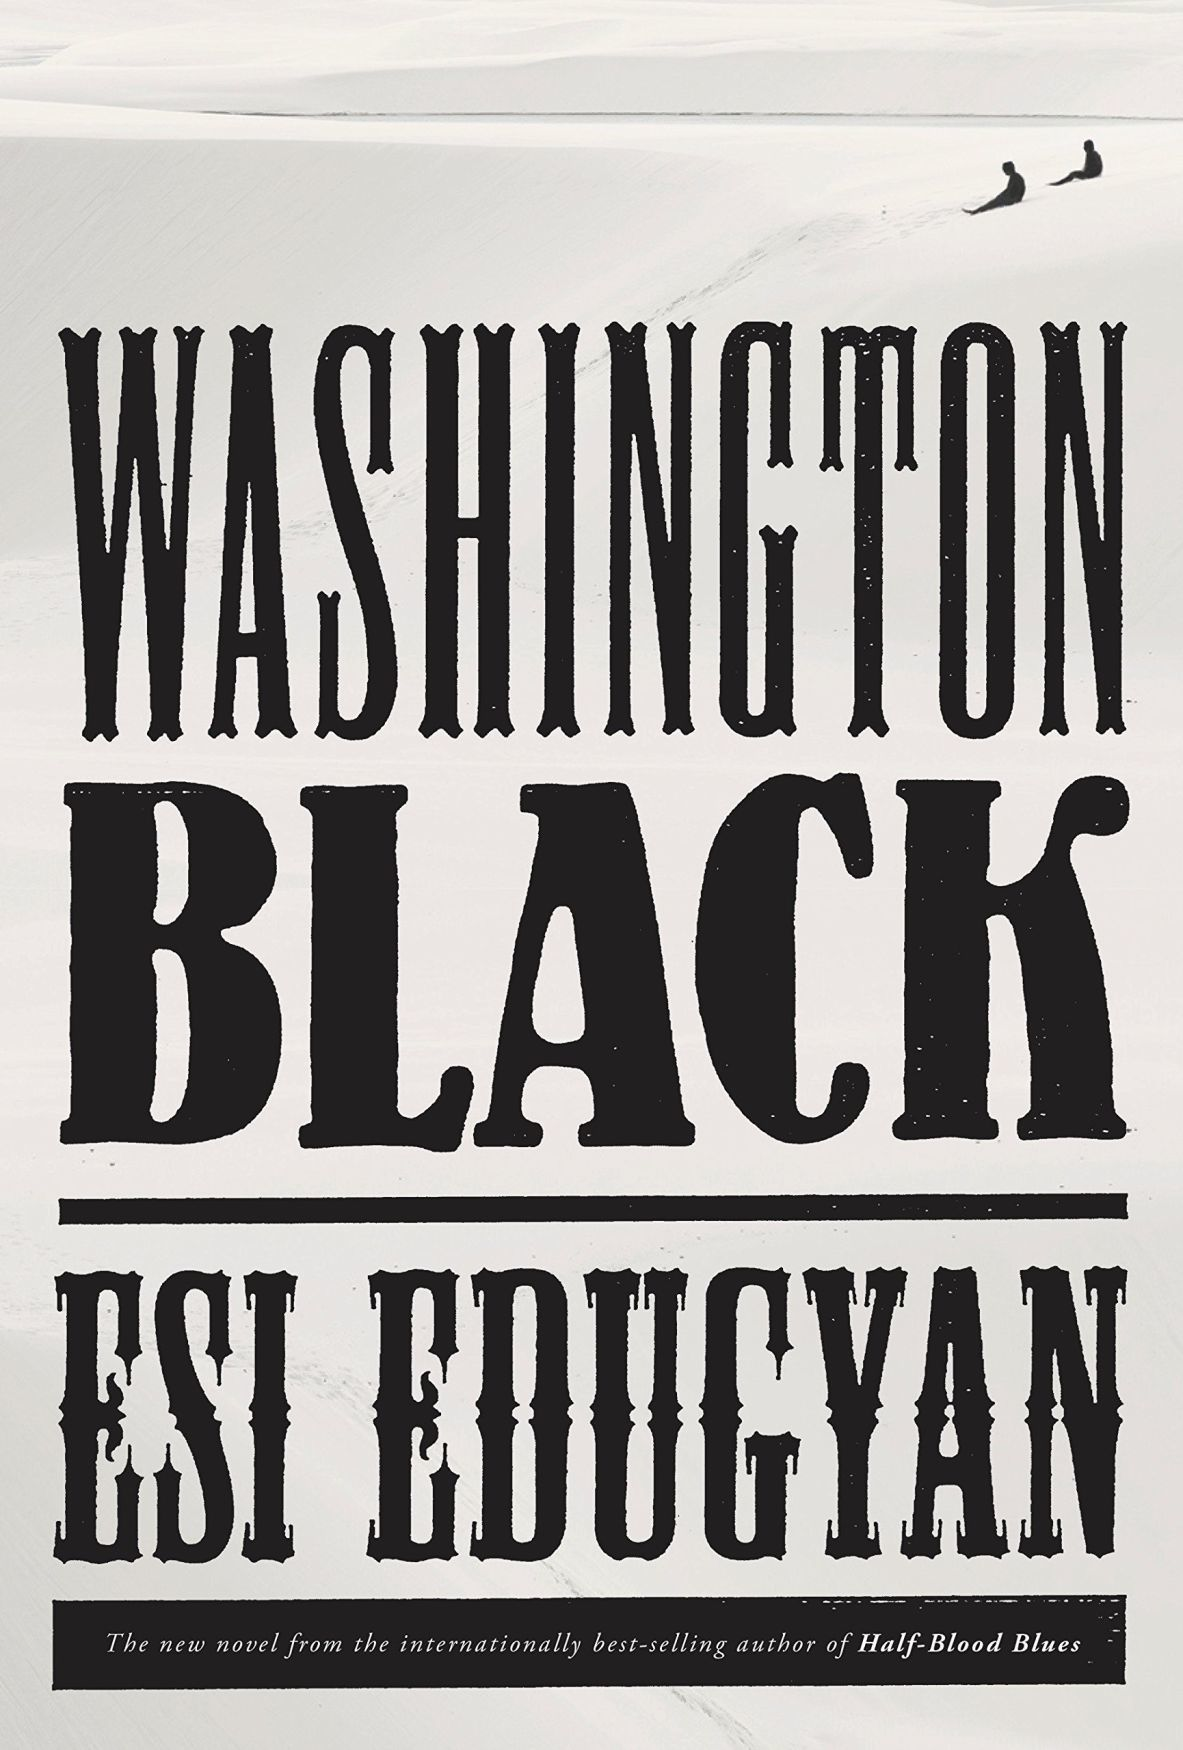 'Washington Black'